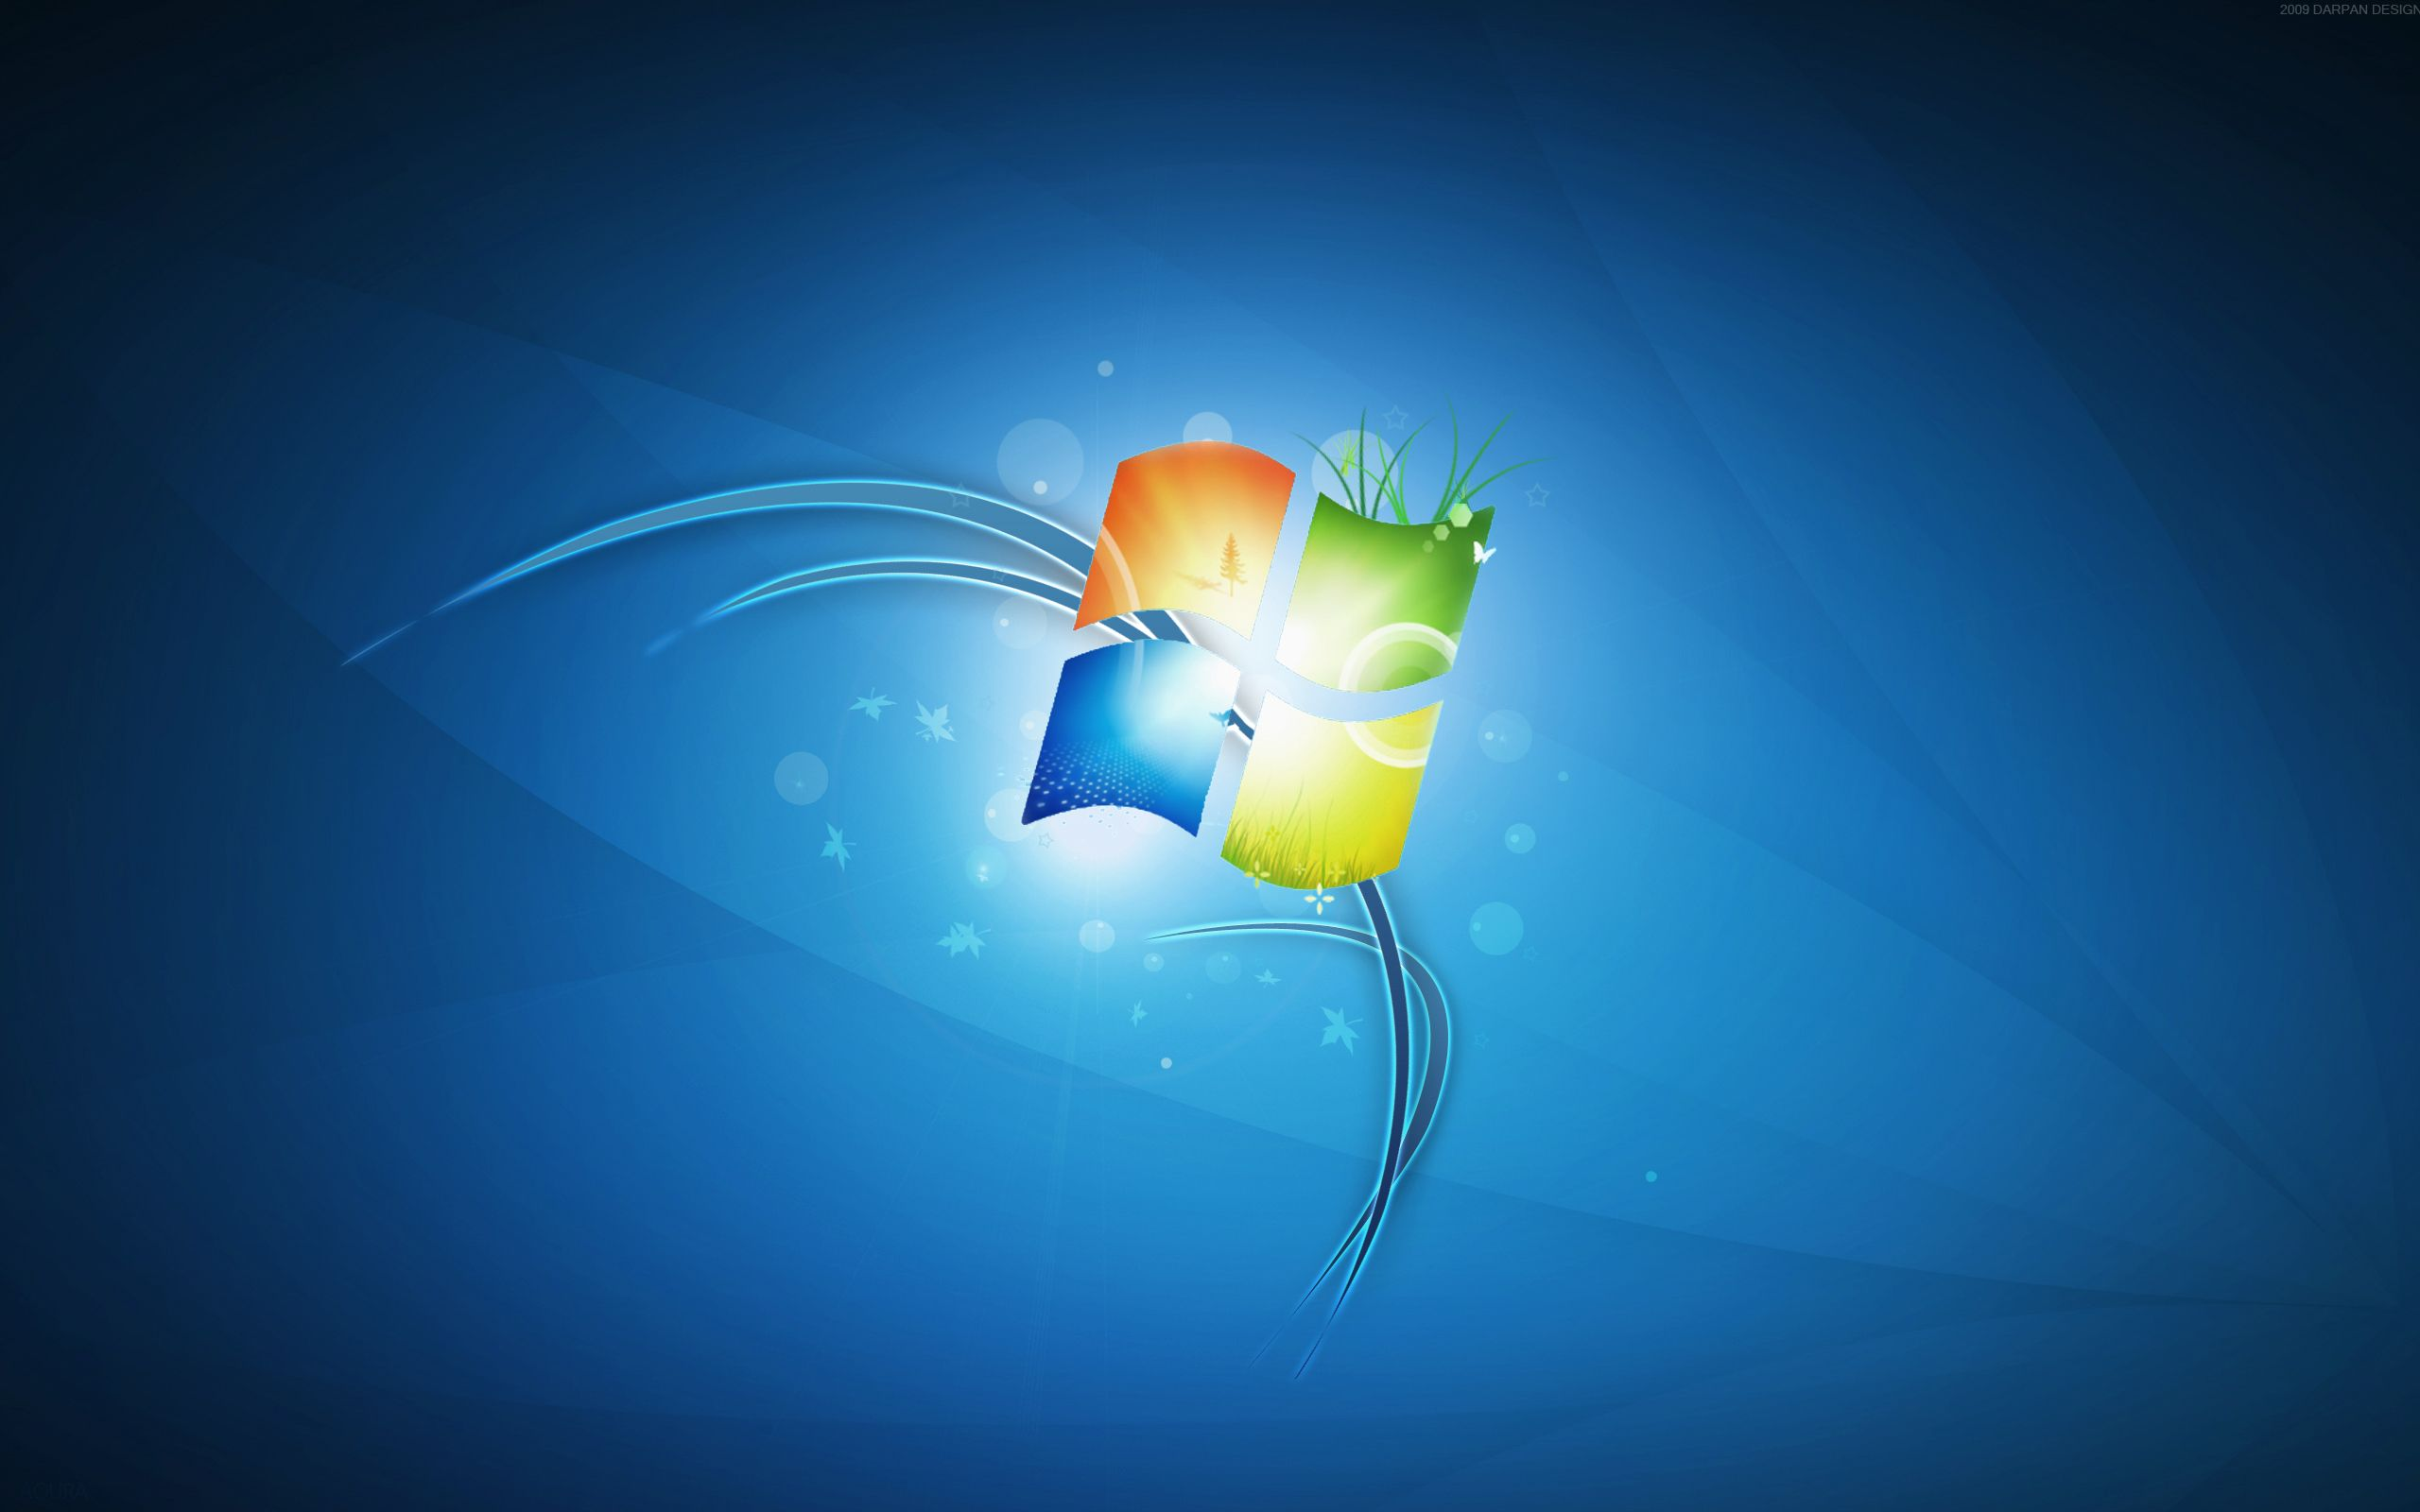 Windows 7 Theme Love Wallpaper Download Windows Wallpaper Windows Desktop Wallpaper